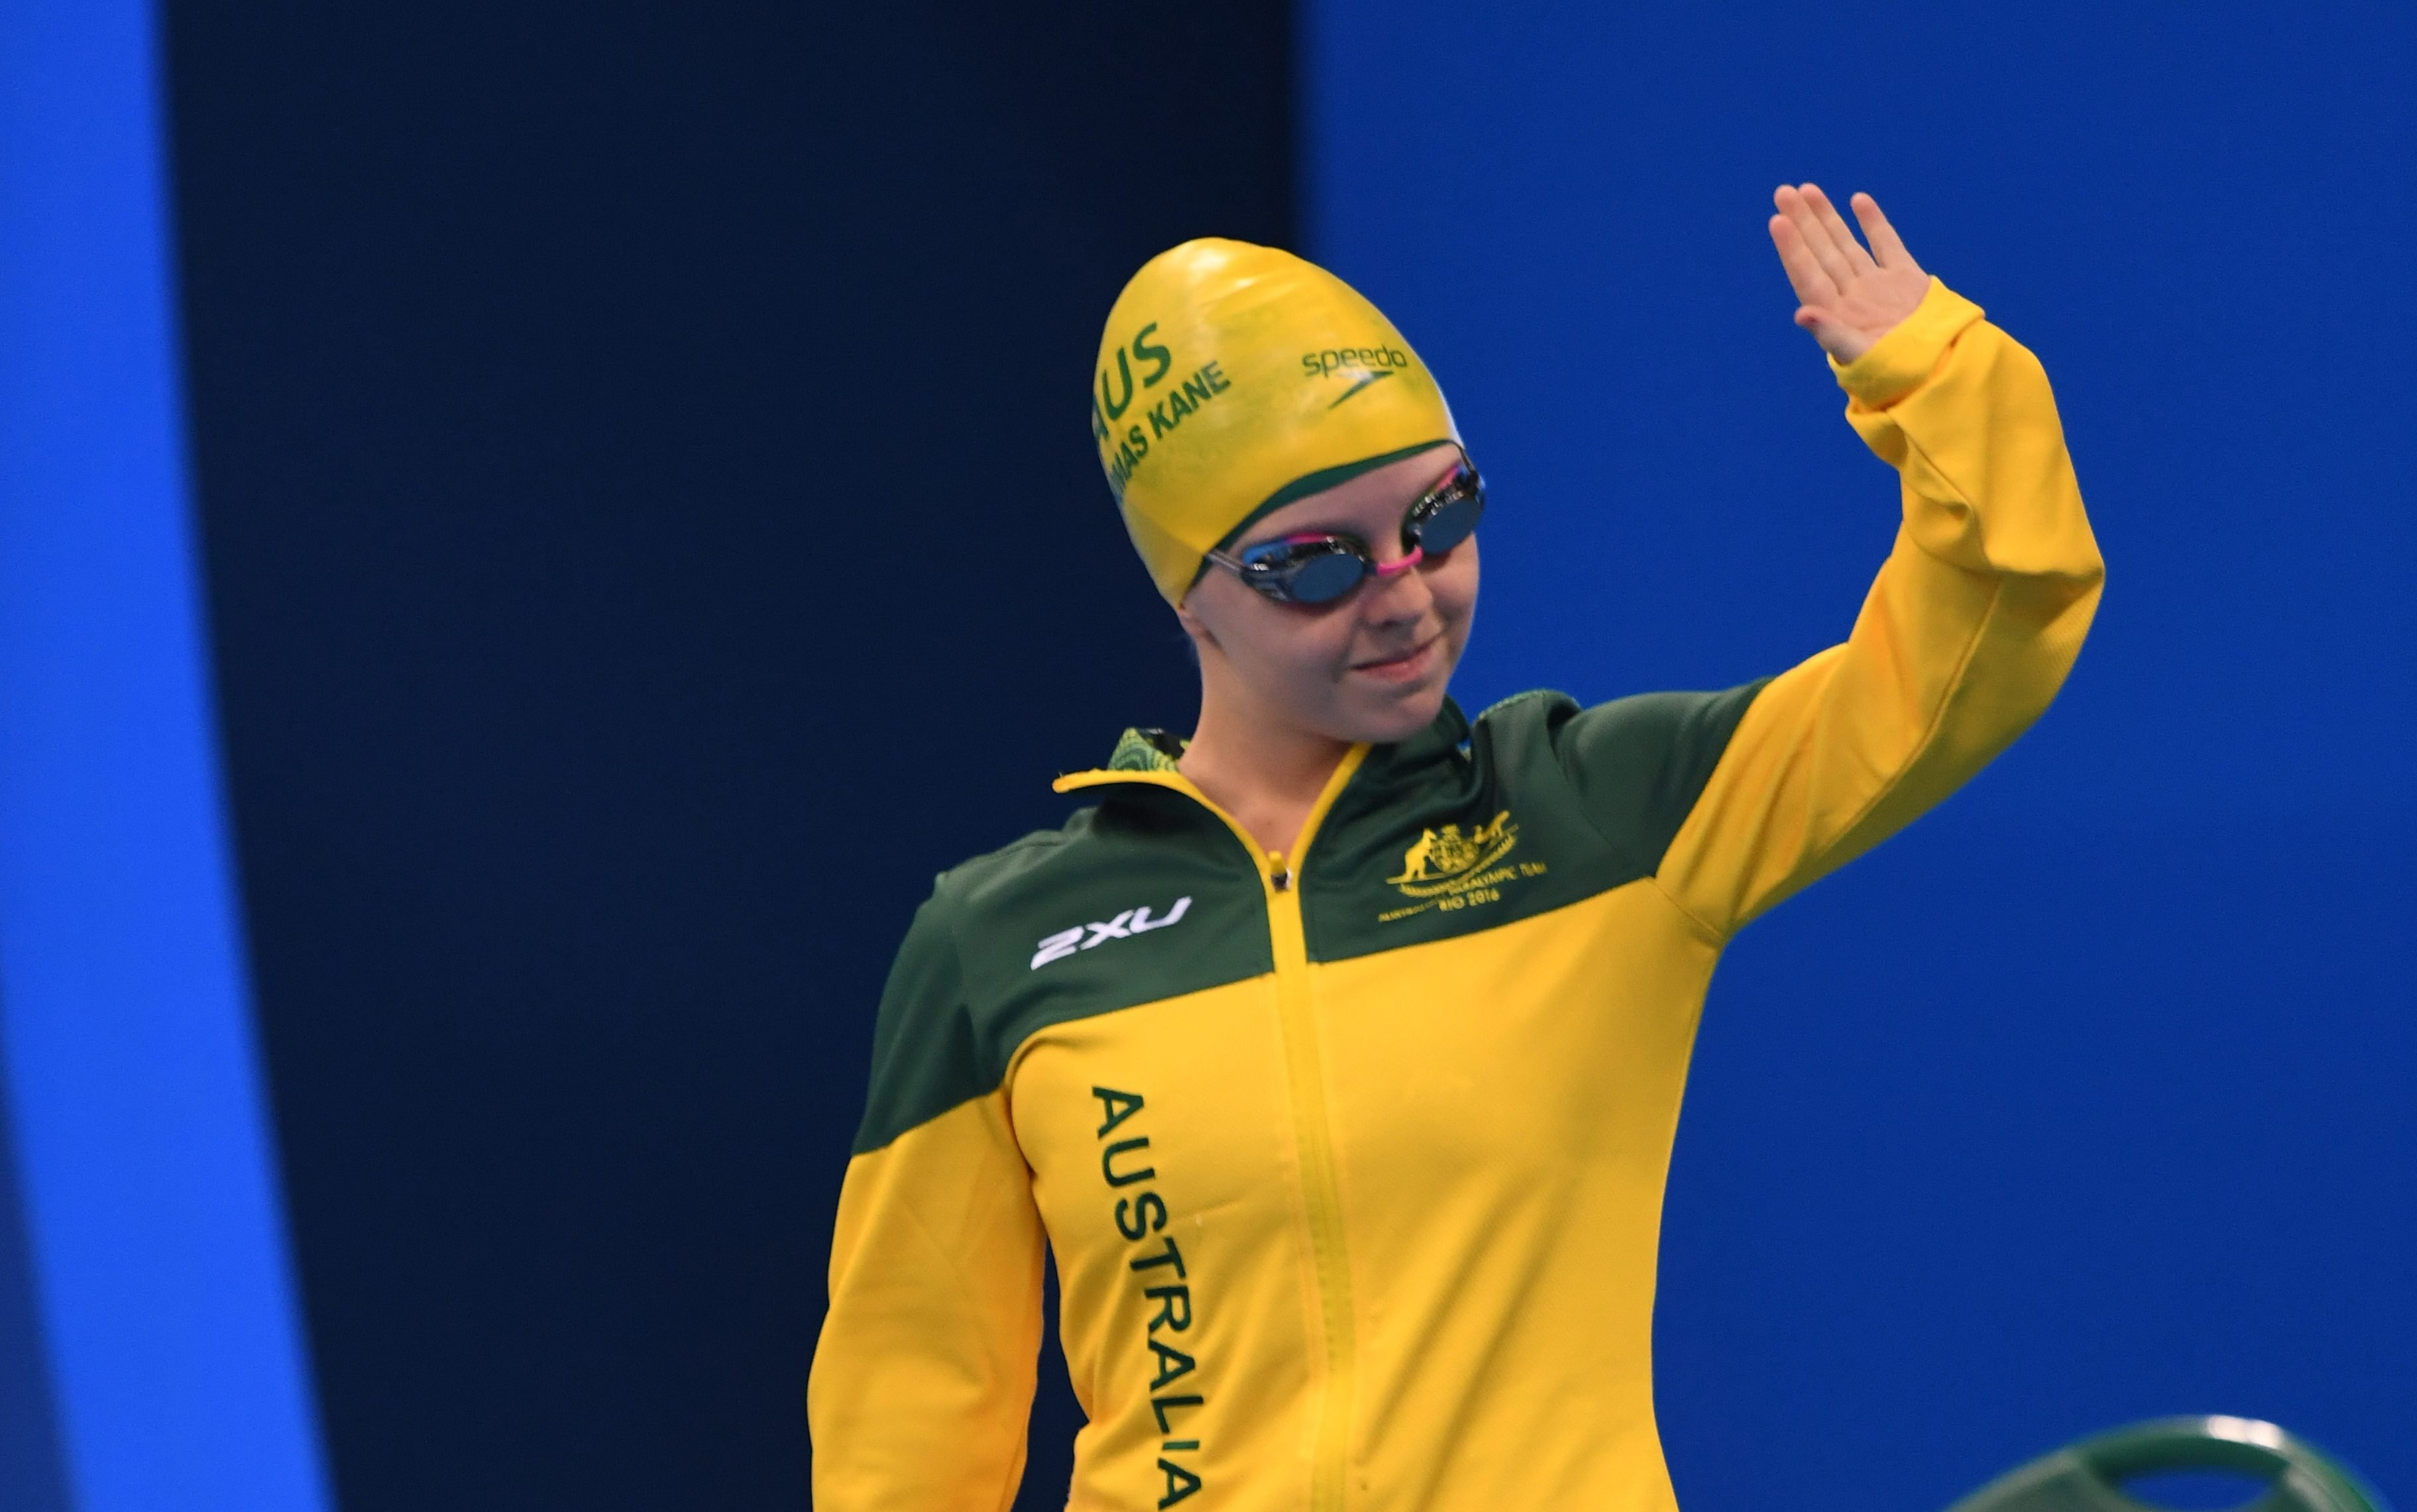 Patterson and Thomas Kane add to their gold medal haul at Swimming Nationals